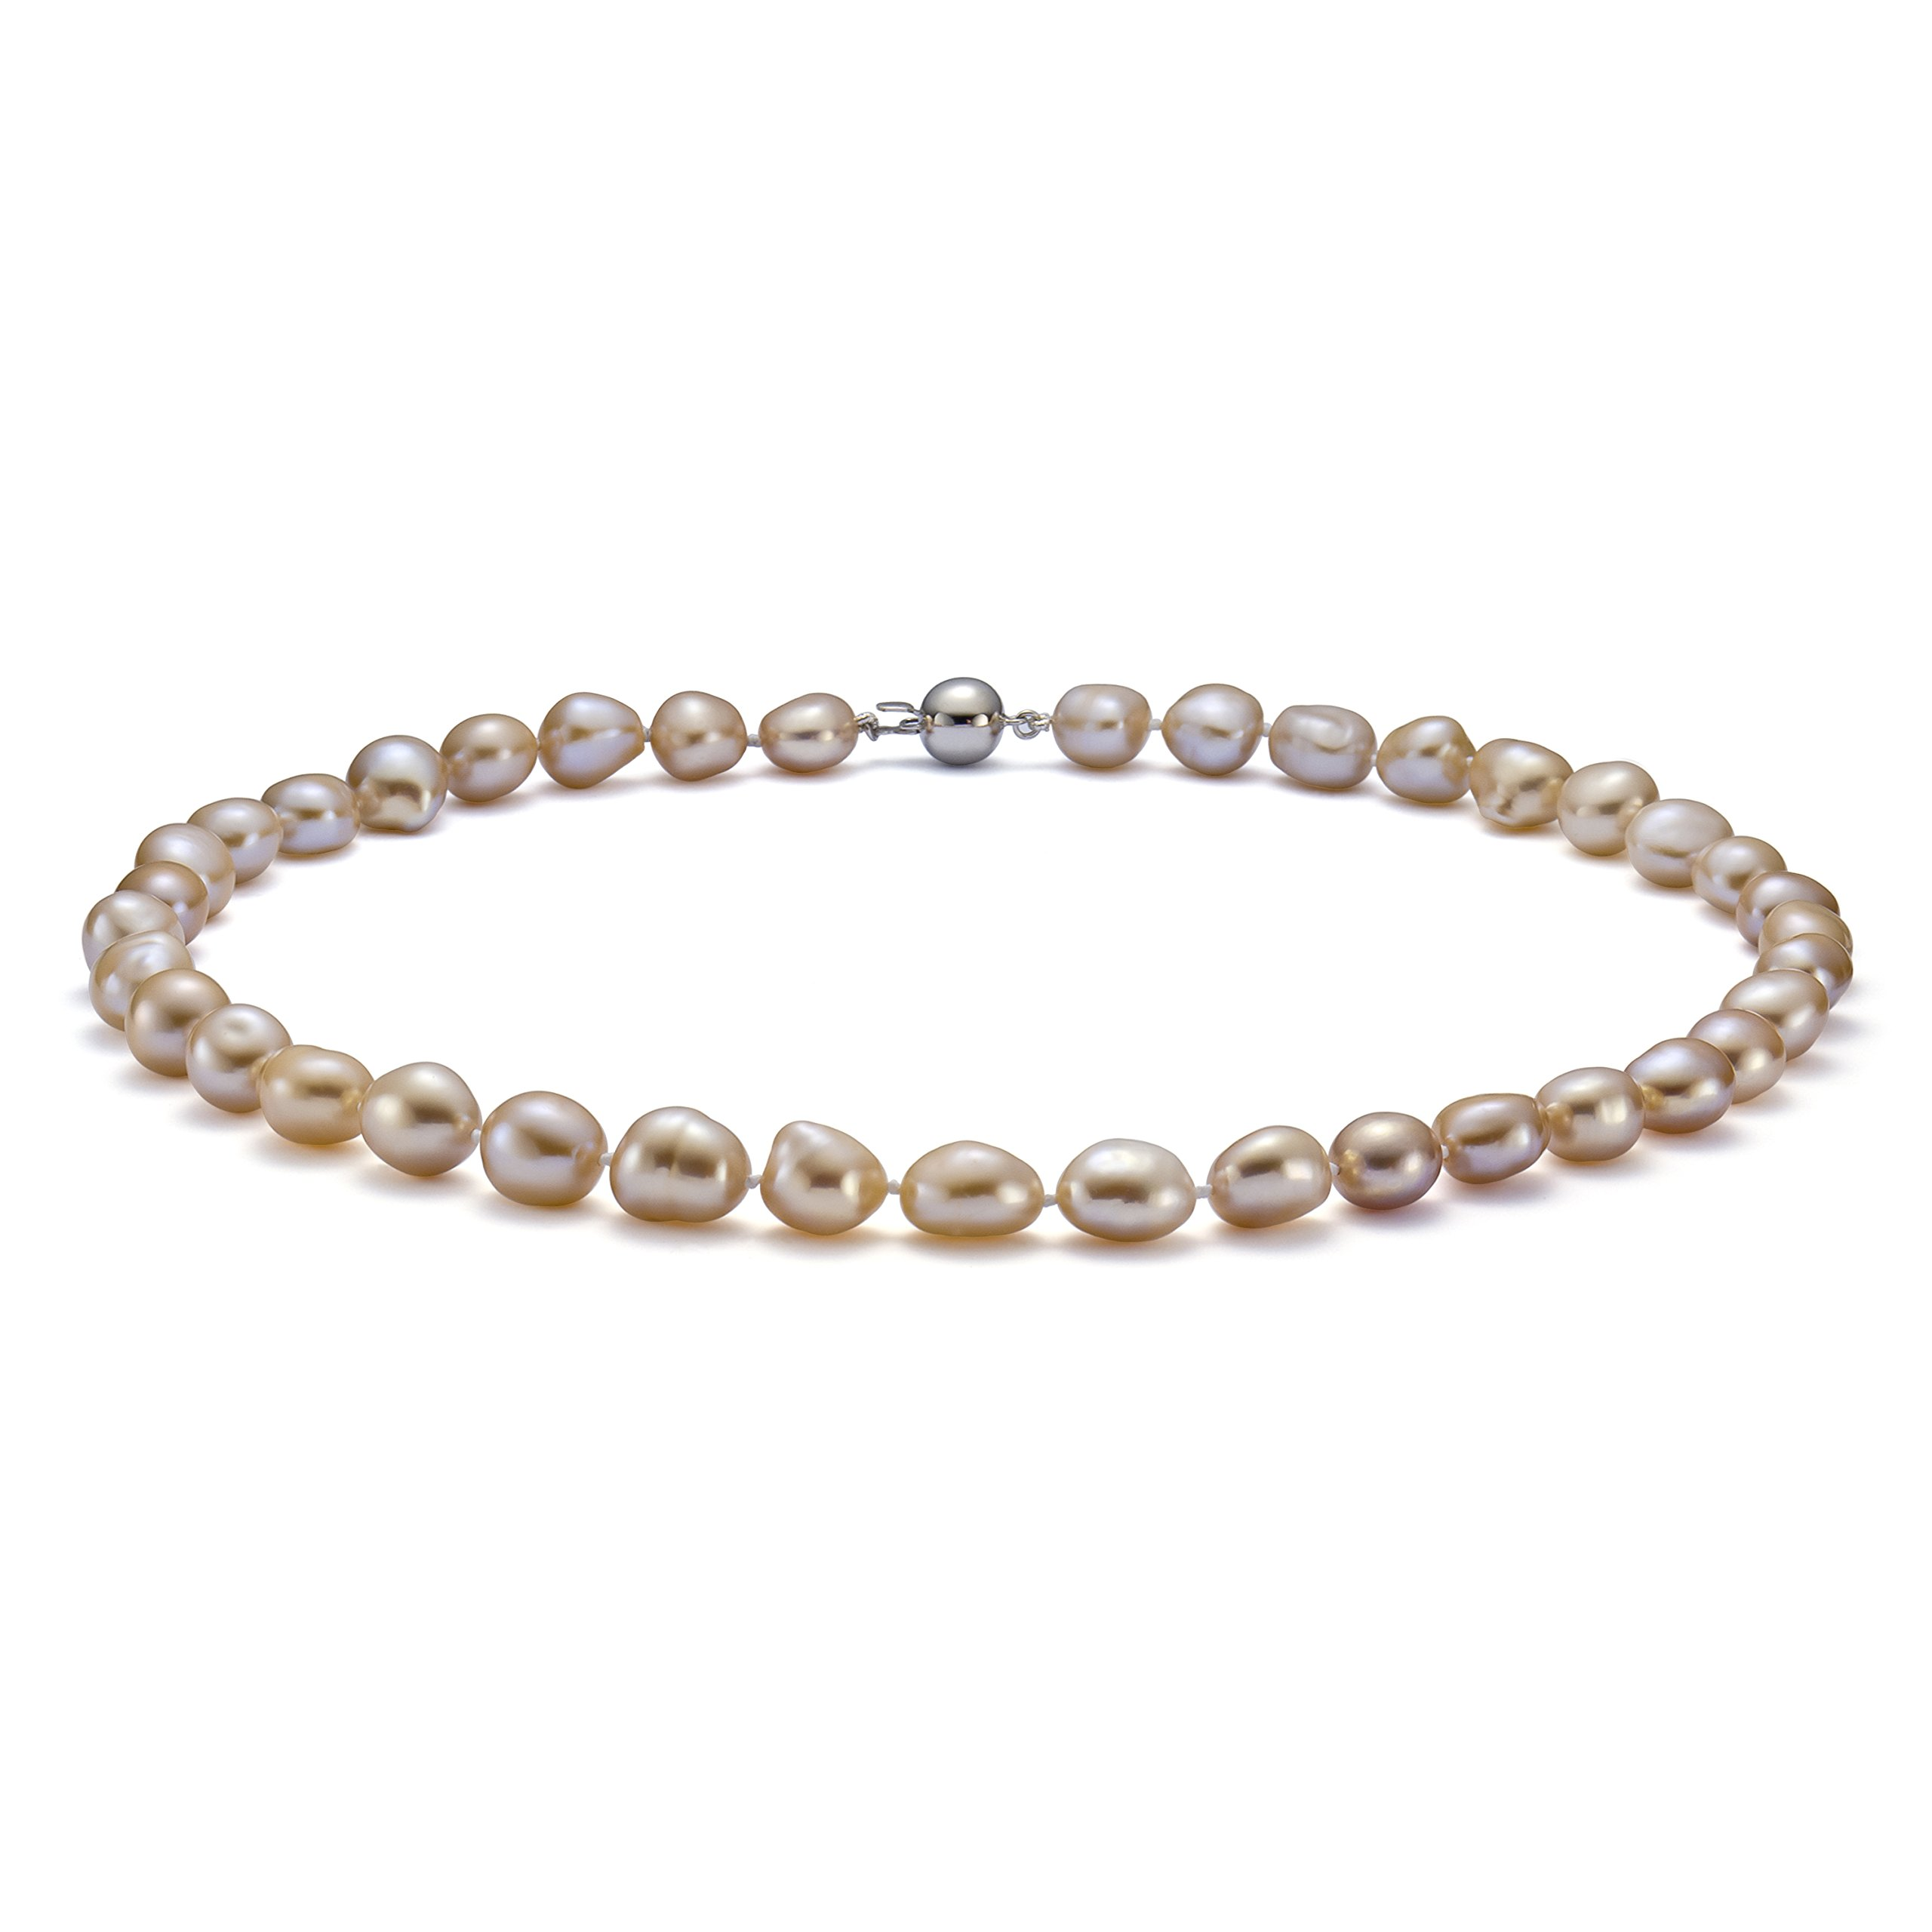 HinsonGayle AAA Handpicked 10-11mm Pink Baroque Freshwater Cultured Pearl Necklace (Silver )-18 in length by HinsonGayle Fine Pearl Jewelry (Image #5)